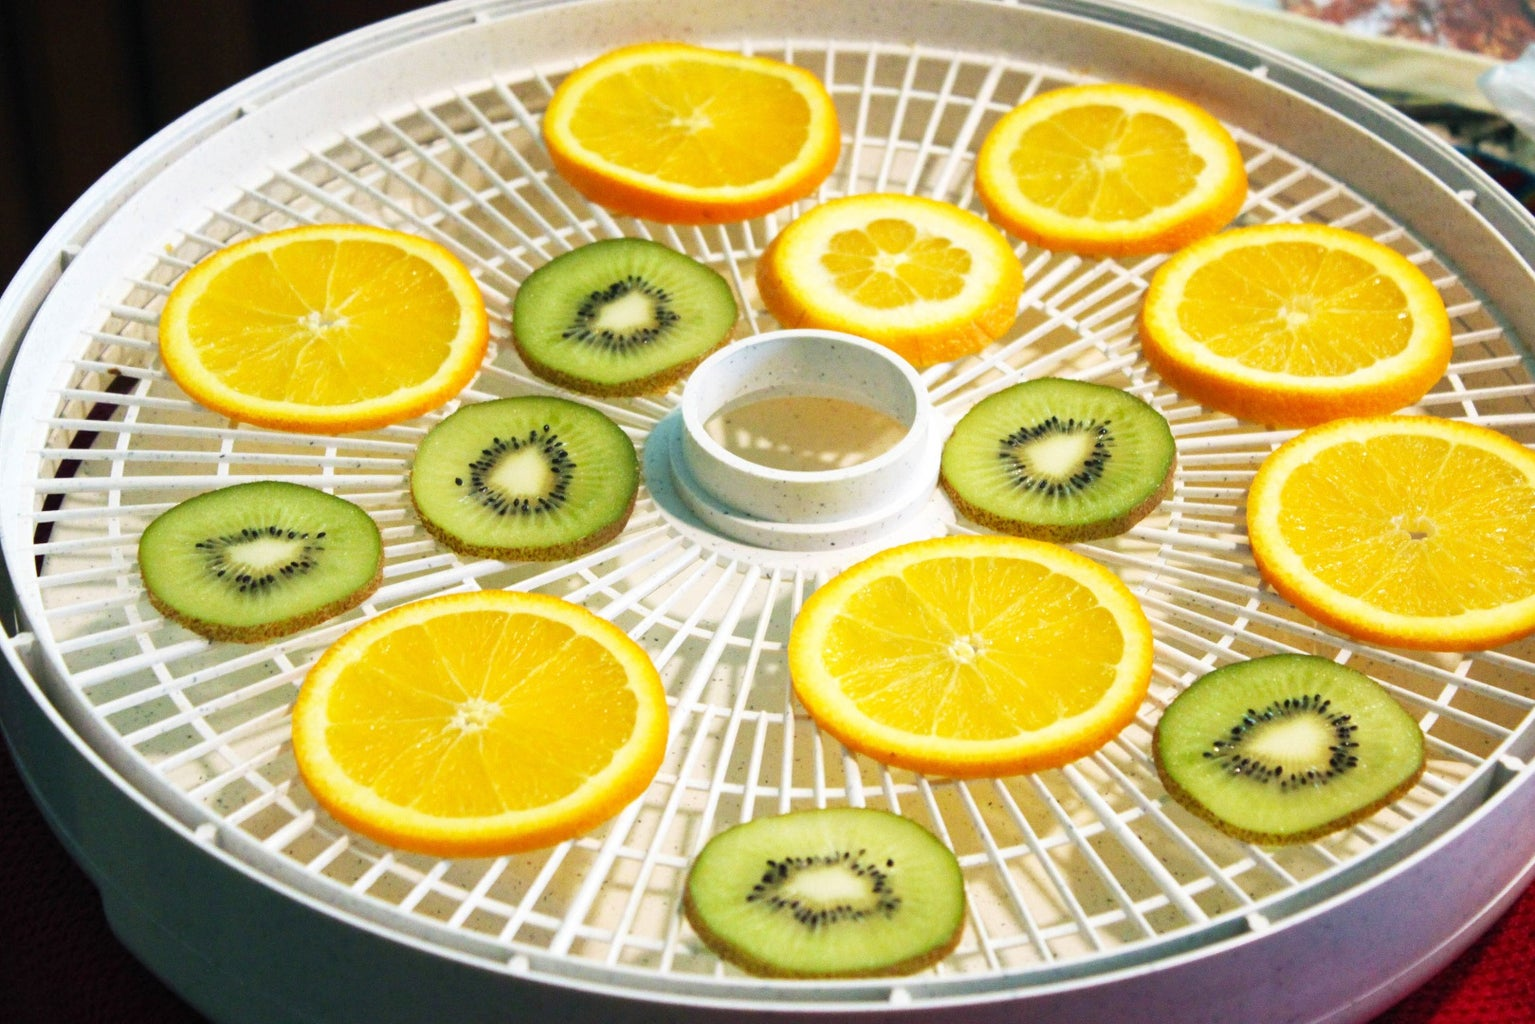 Dehydrating (End of Day One)